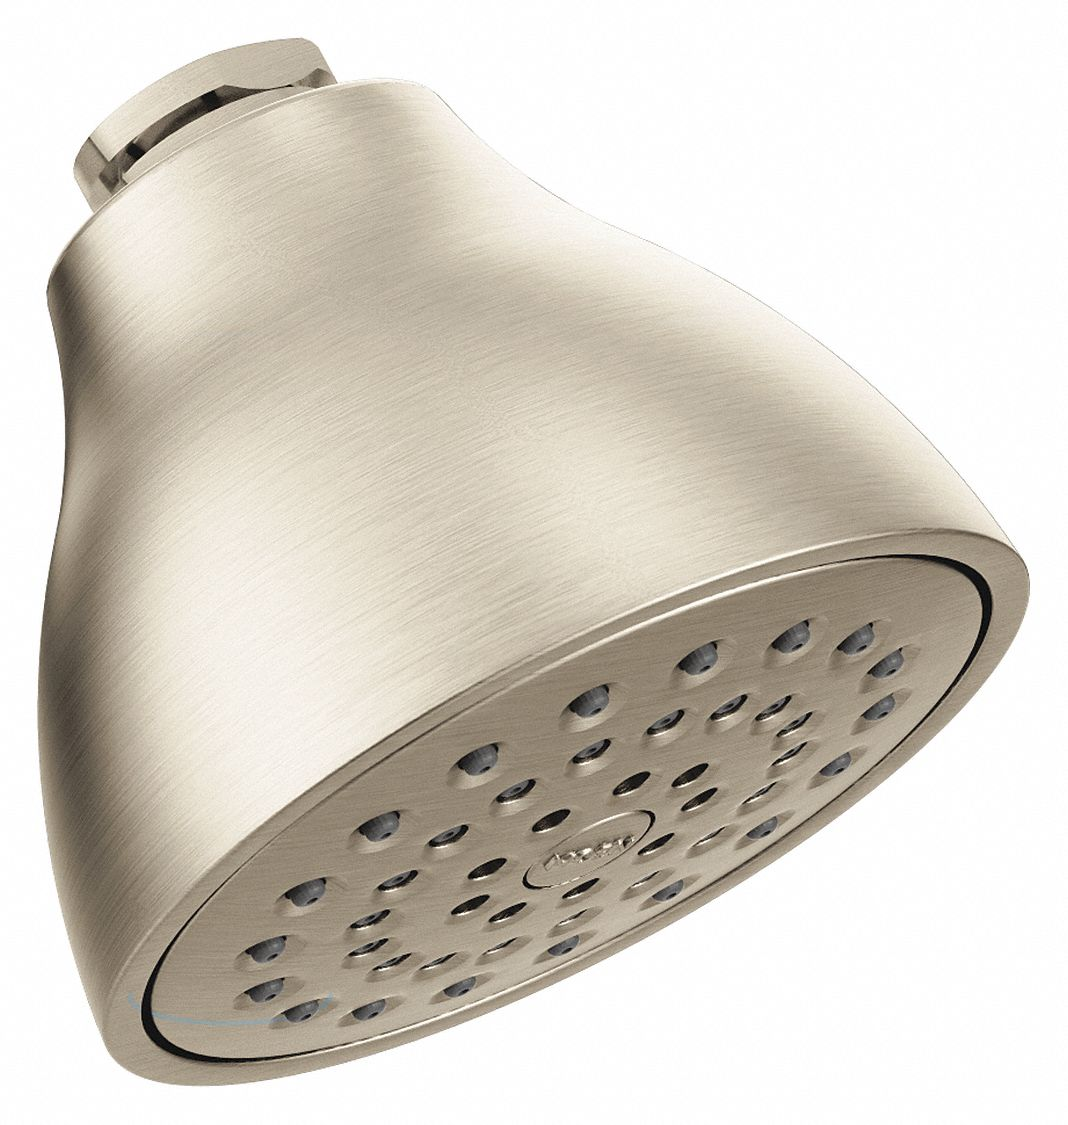 Moen,  Wall Mounted,  Showerhead,  2.5 gpm,  Brushed Nickel